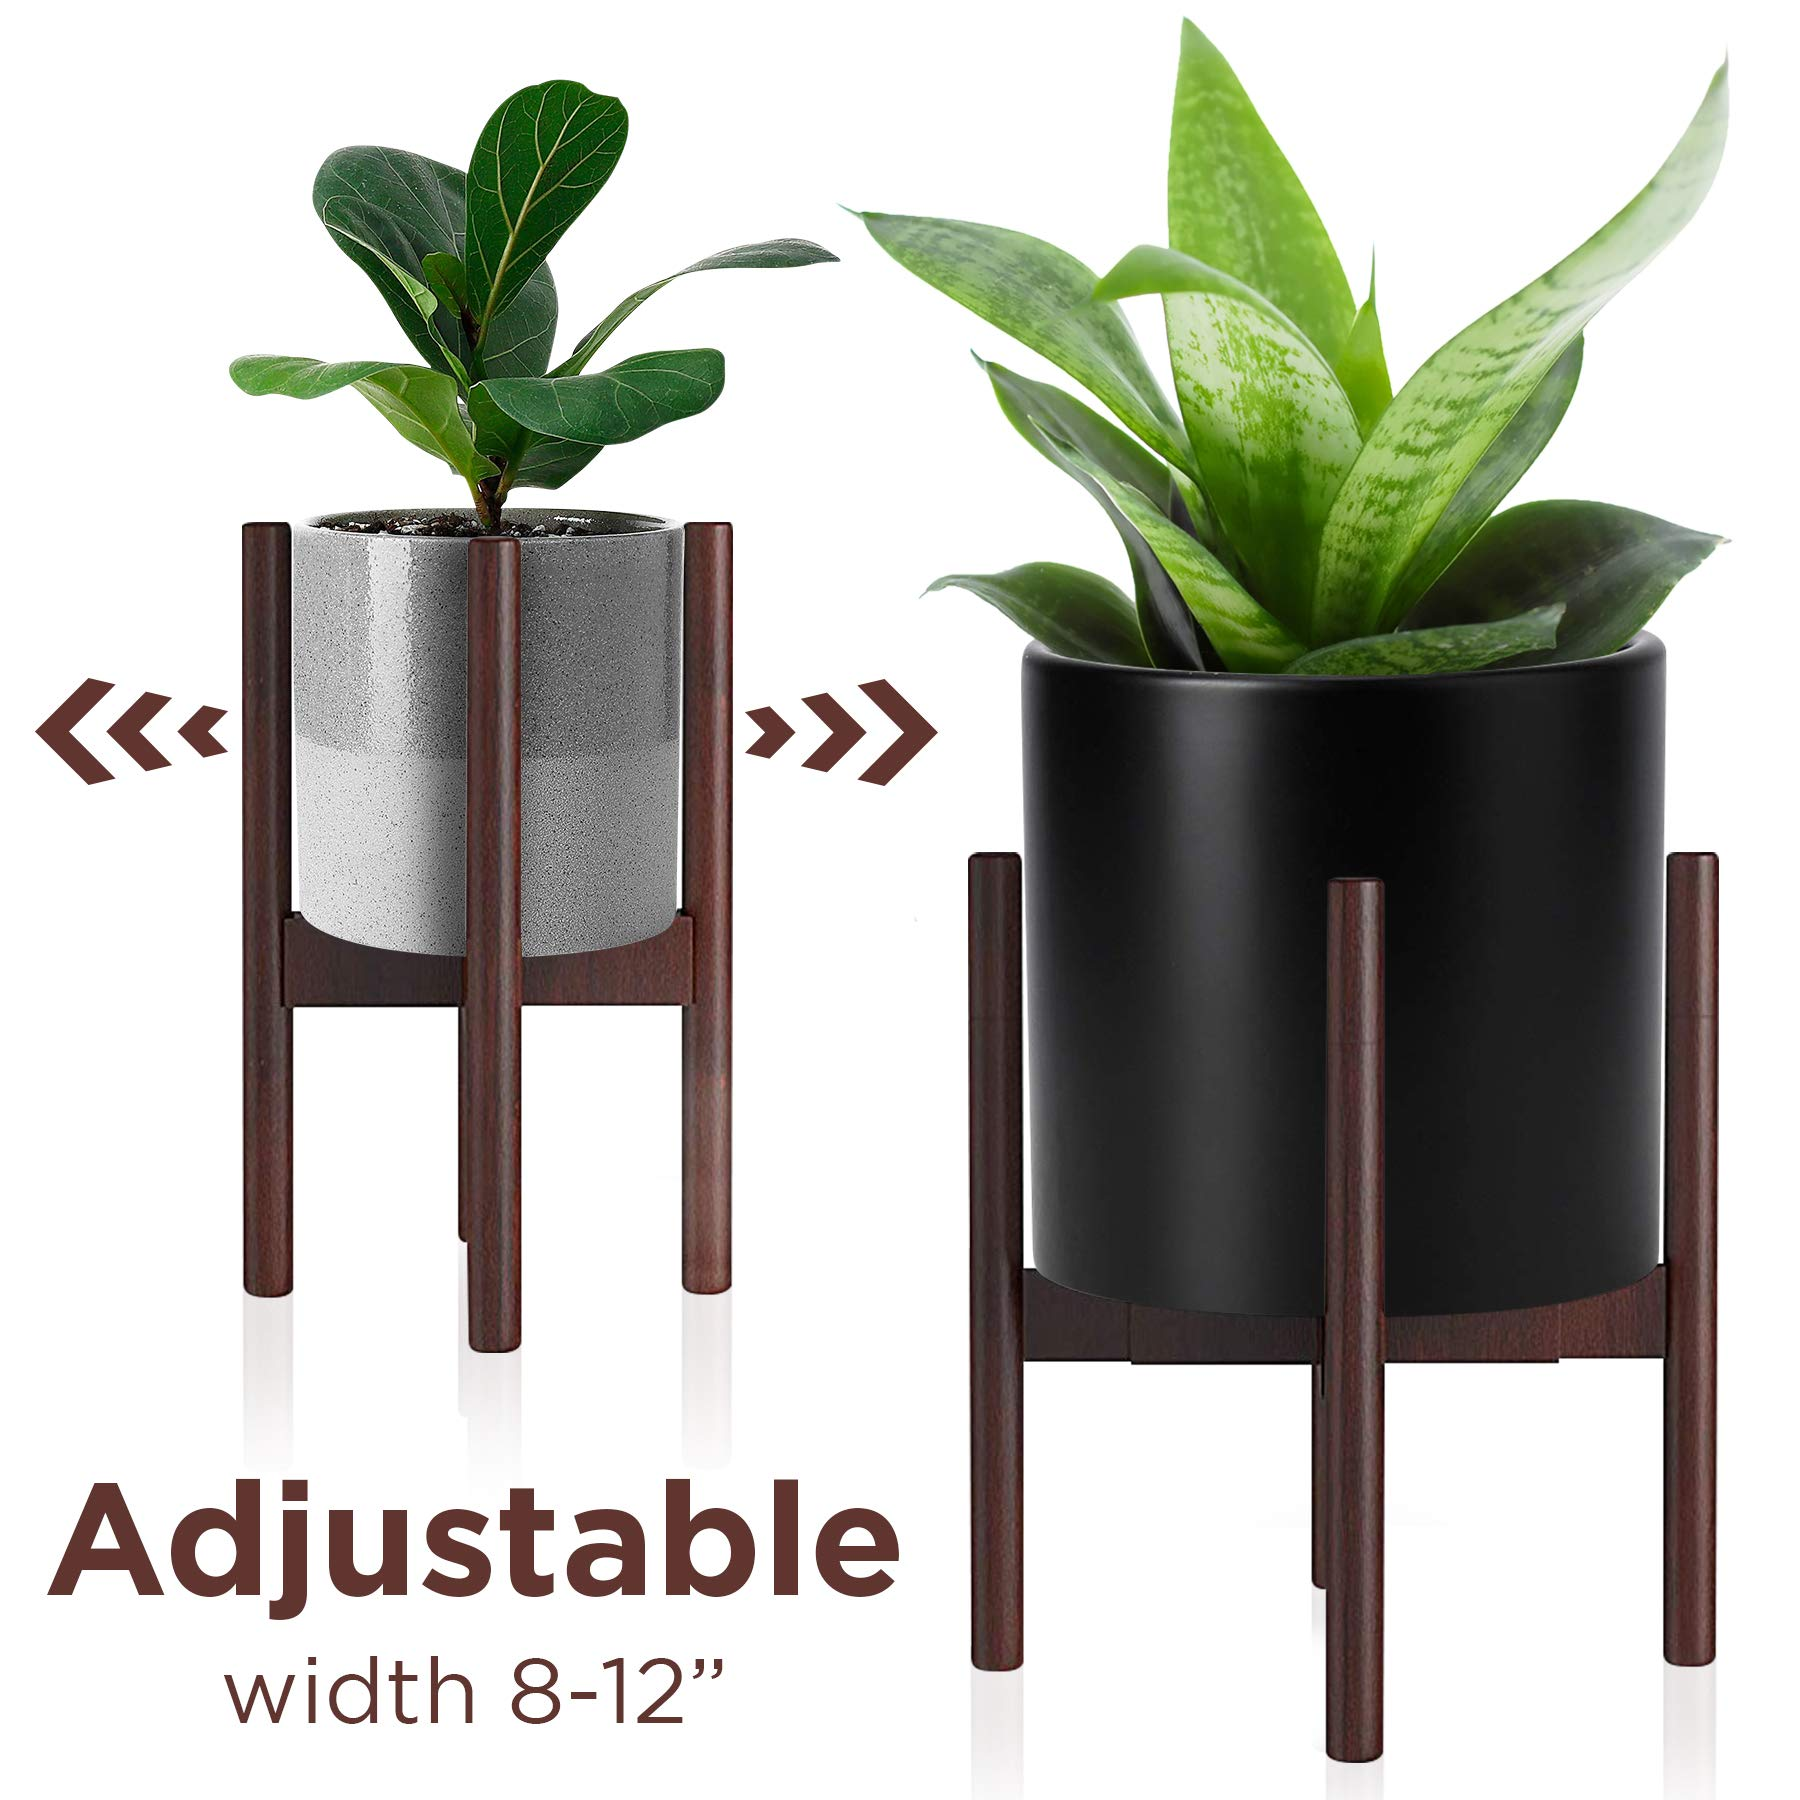 Adjustable Wood Plant Stand Mid Century Modern for Indoor Outdoor Planters, Flower Pot, Plant Holder (Plant and Pot NOT Included) by Plarame